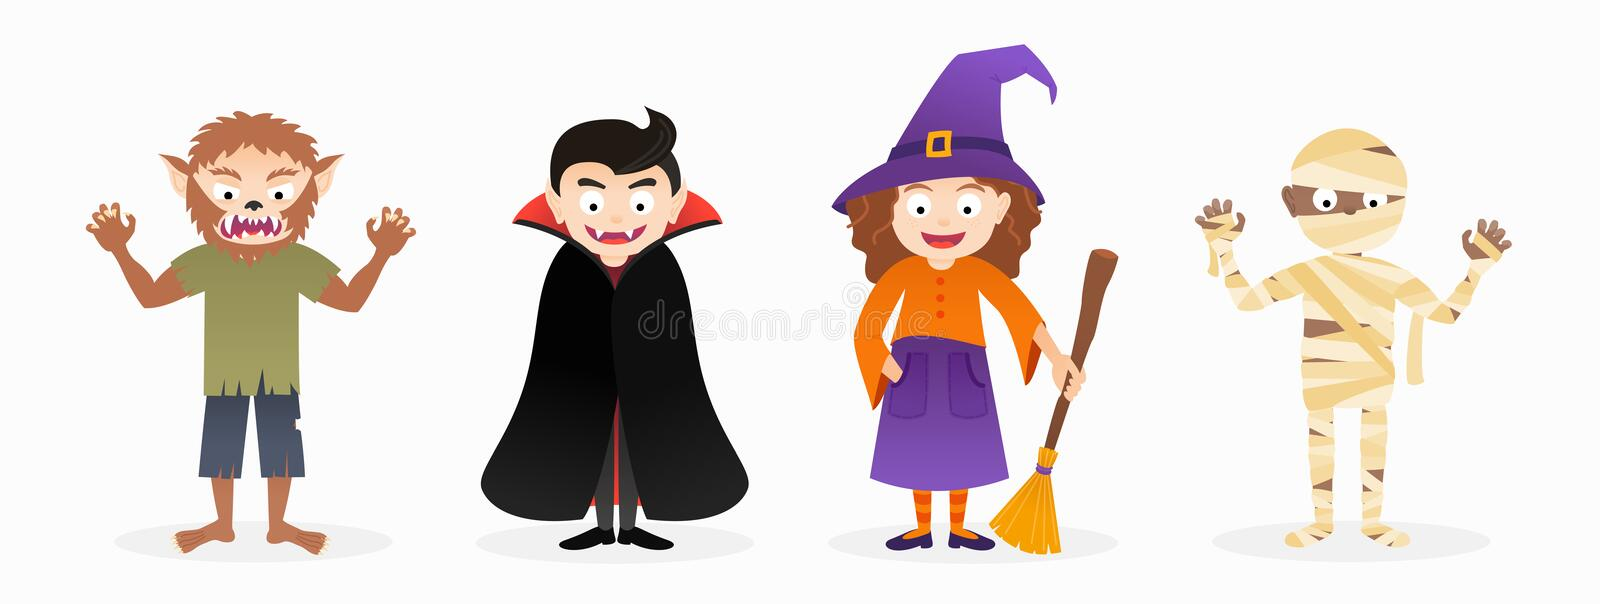 Ensemble de caractères de costume de Halloween d'isolement par bande dessinée illustration stock